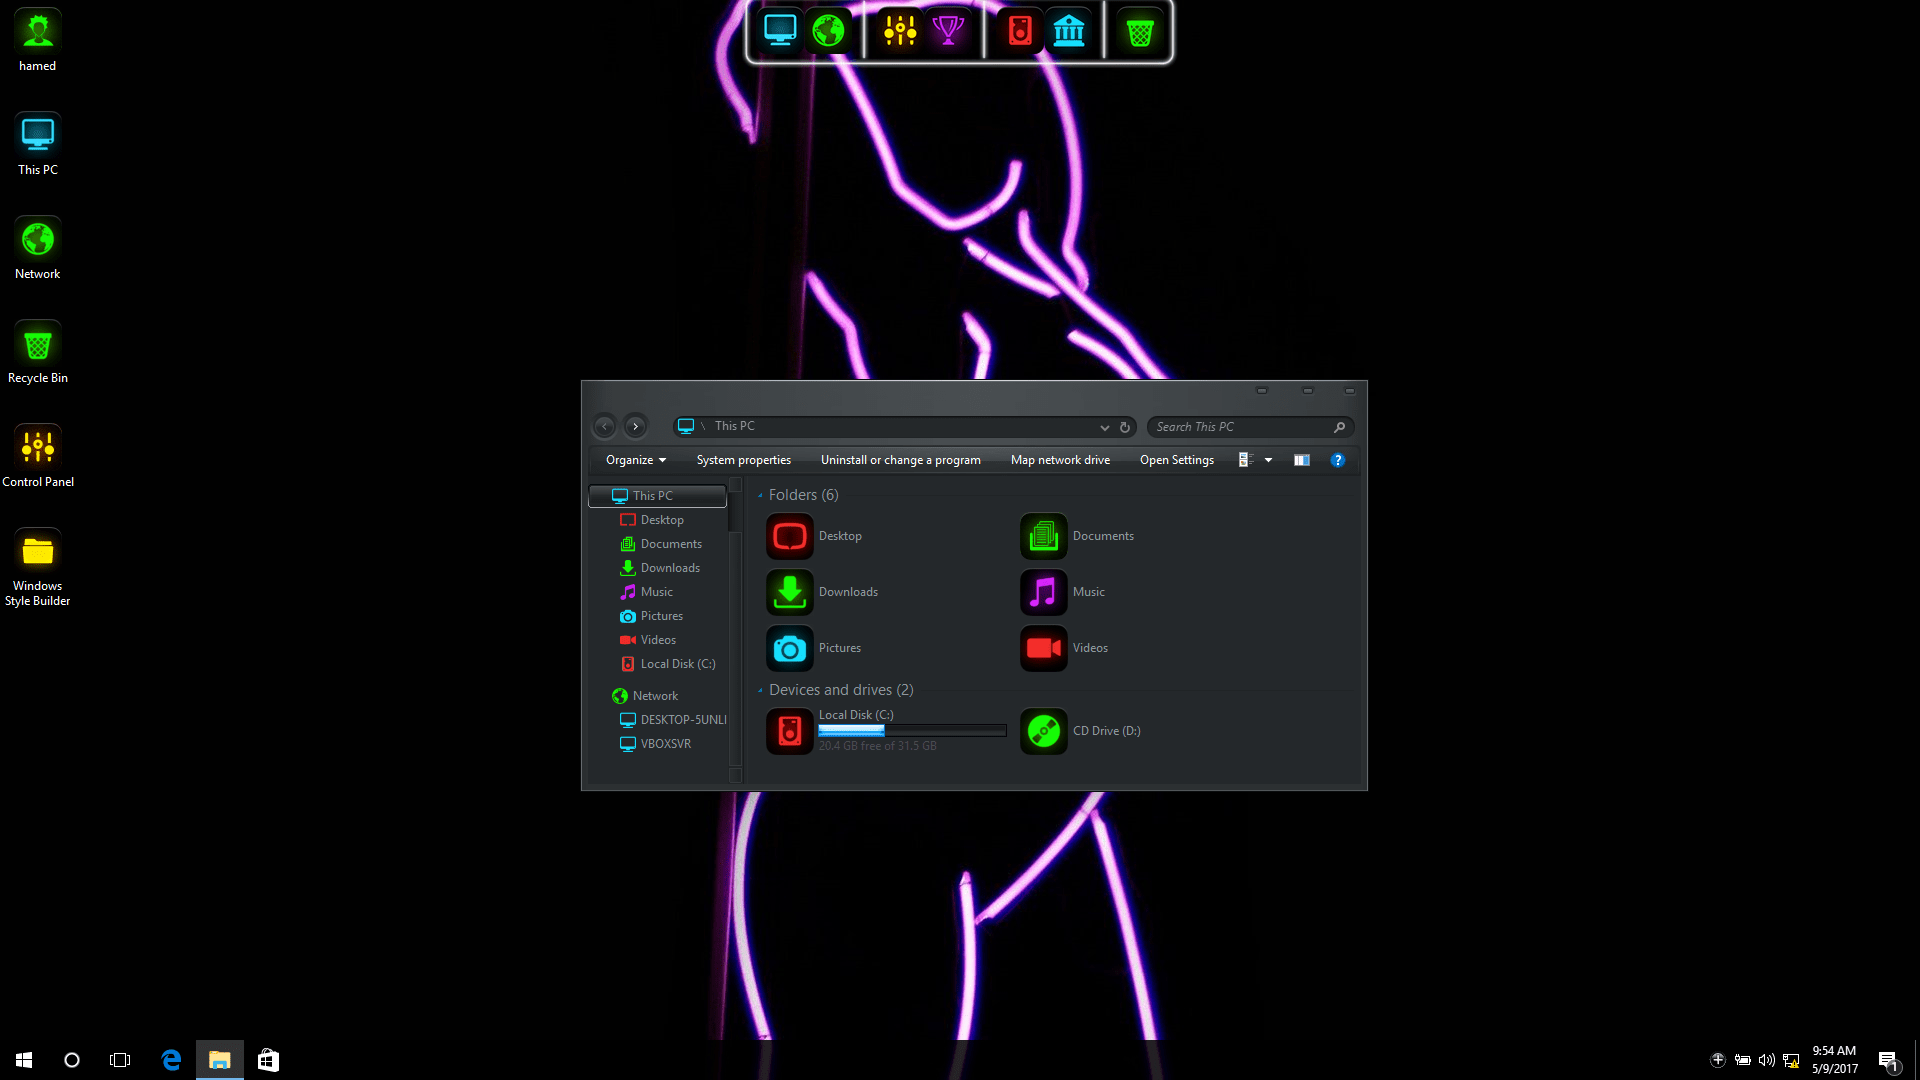 Neon SkinPack for Windows 7\8.1\10 19H2